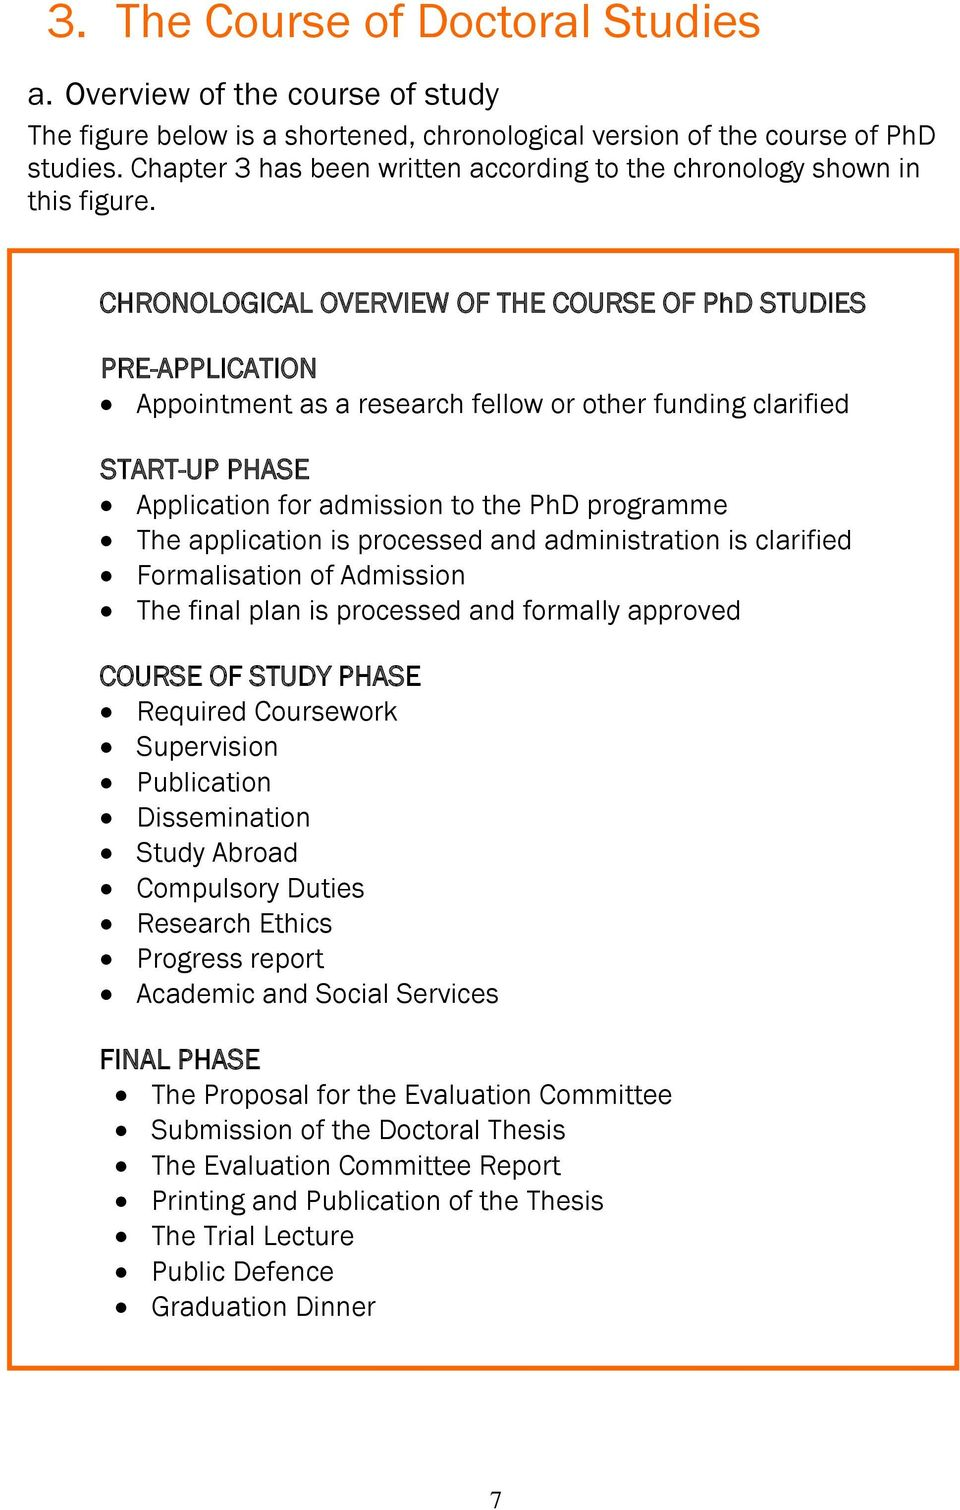 CHRONOLOGICAL OVERVIEW OF THE COURSE OF PhD STUDIES PRE-APPLICATION Appointment as a research fellow or other funding clarified START-UP PHASE Application for admission to the PhD programme The